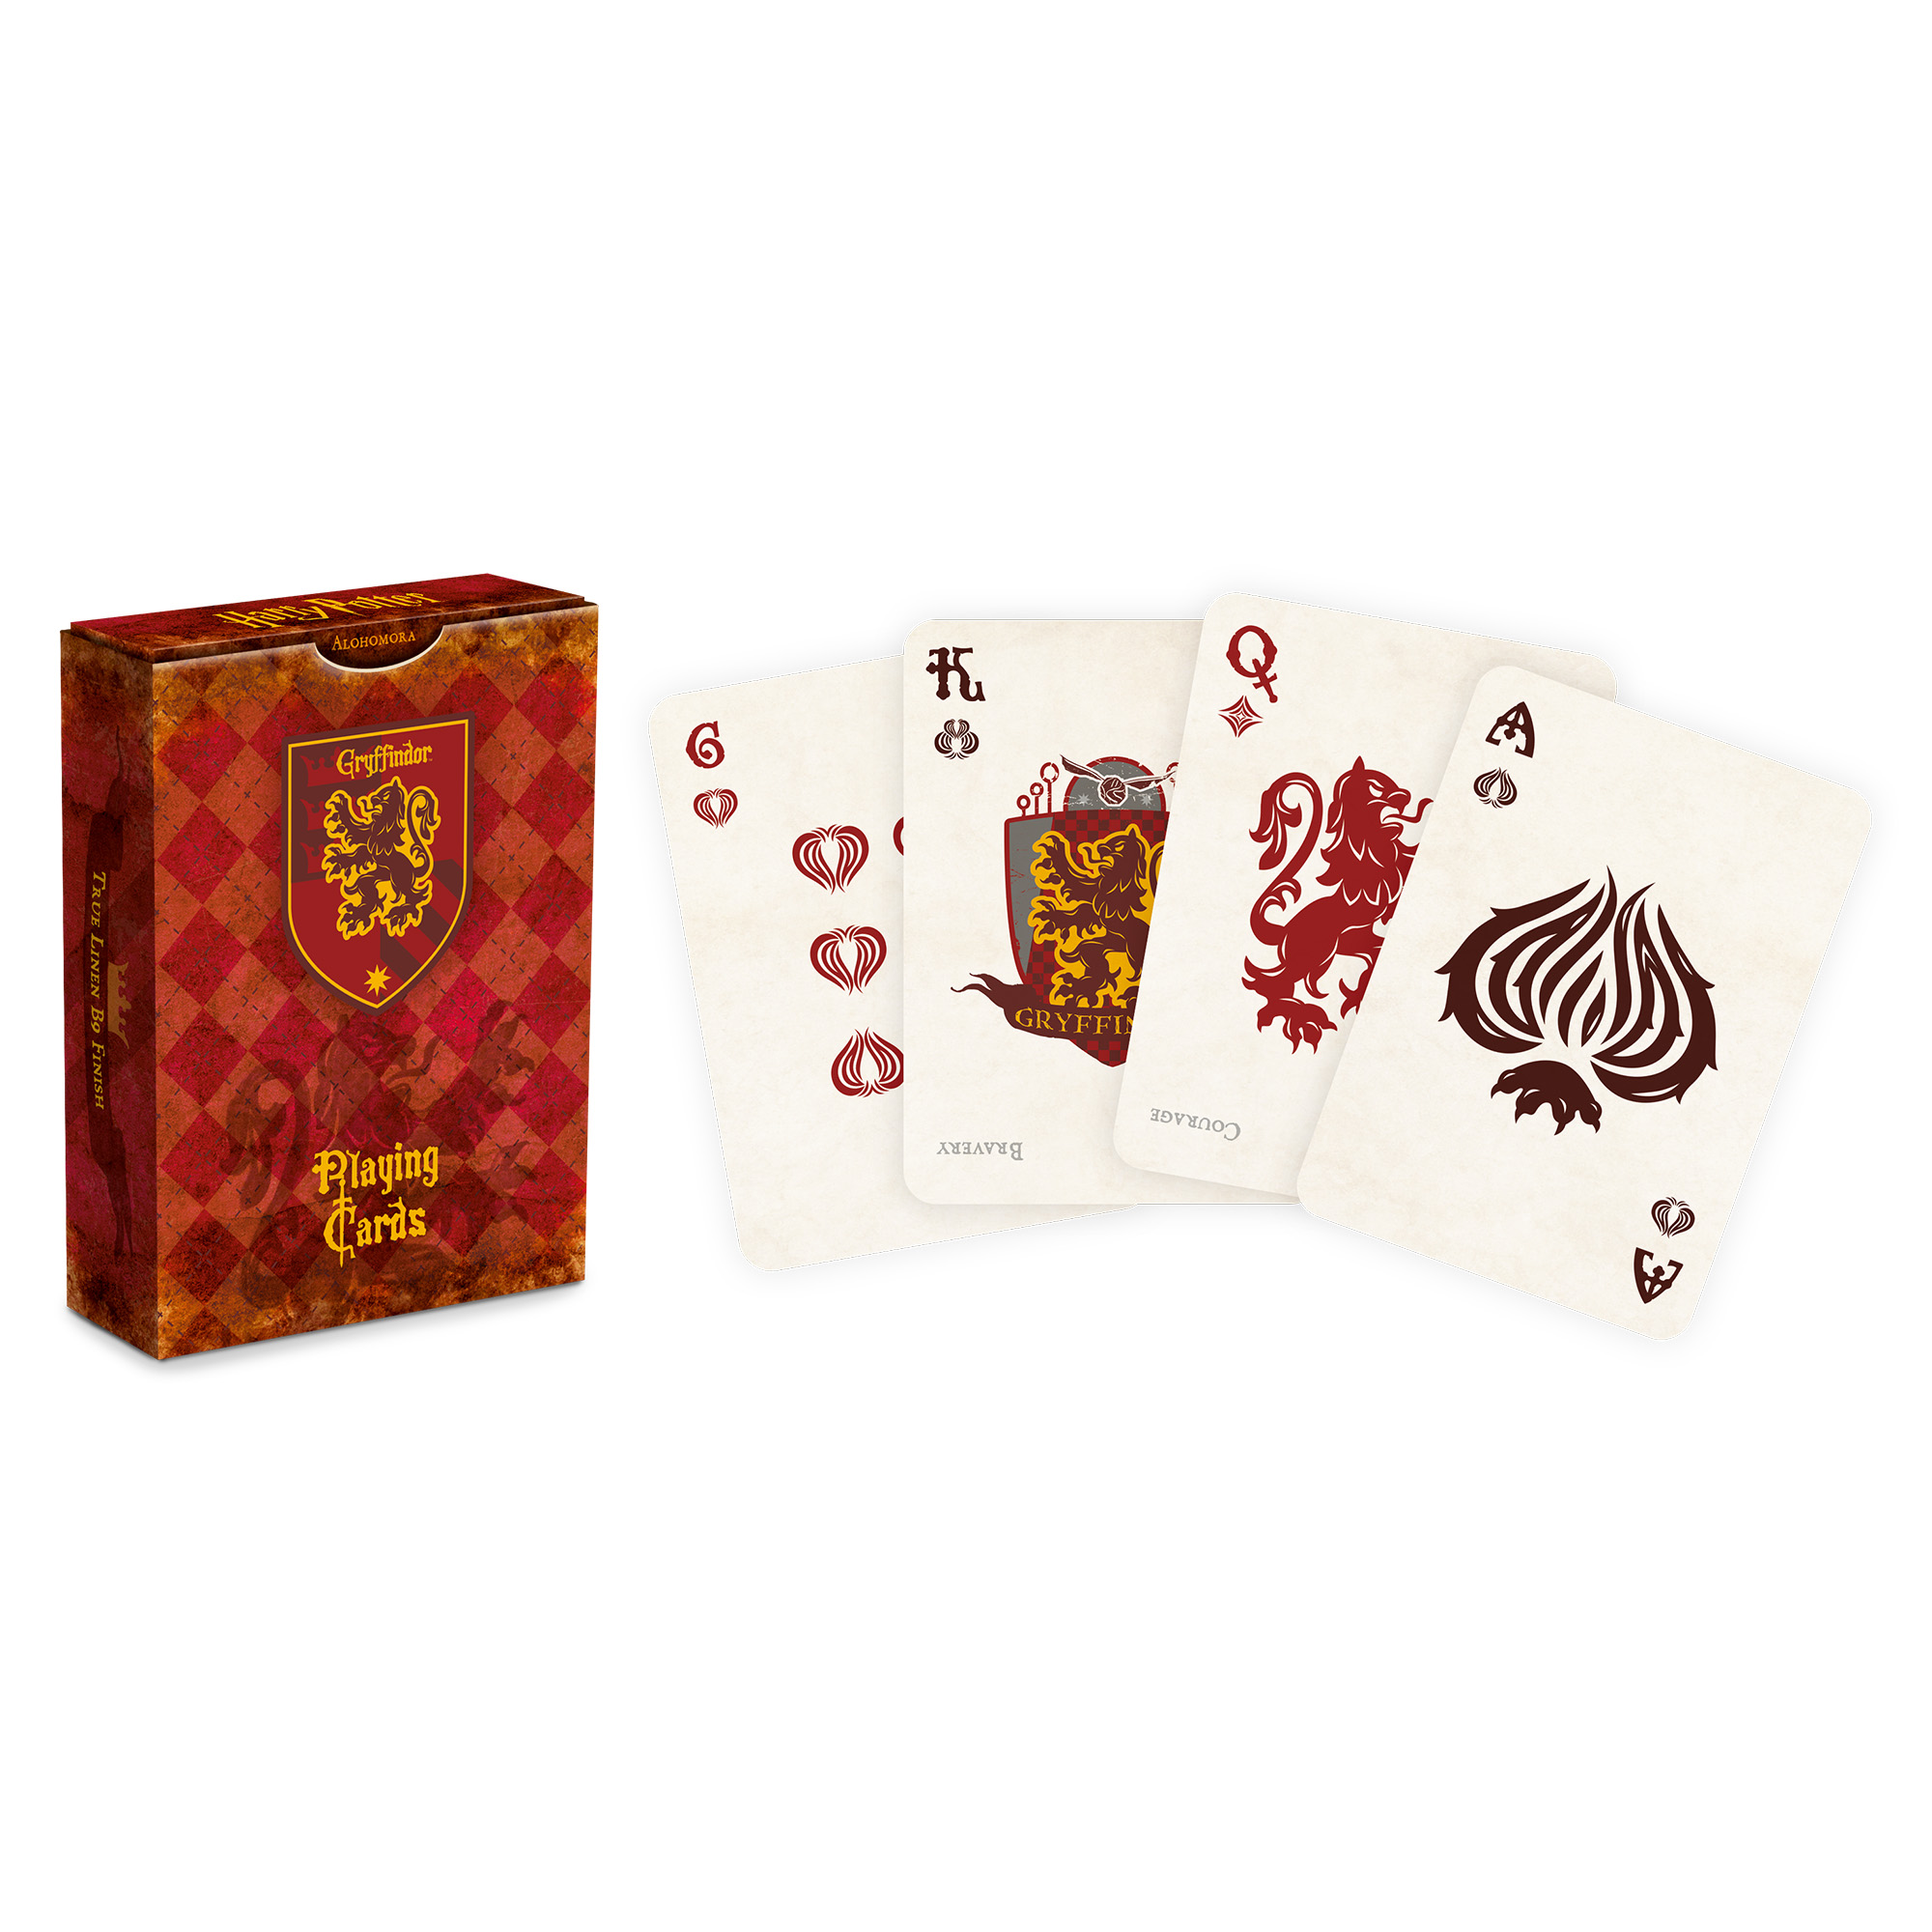 Picture of Harry Potter Gryffindor Playng Cards